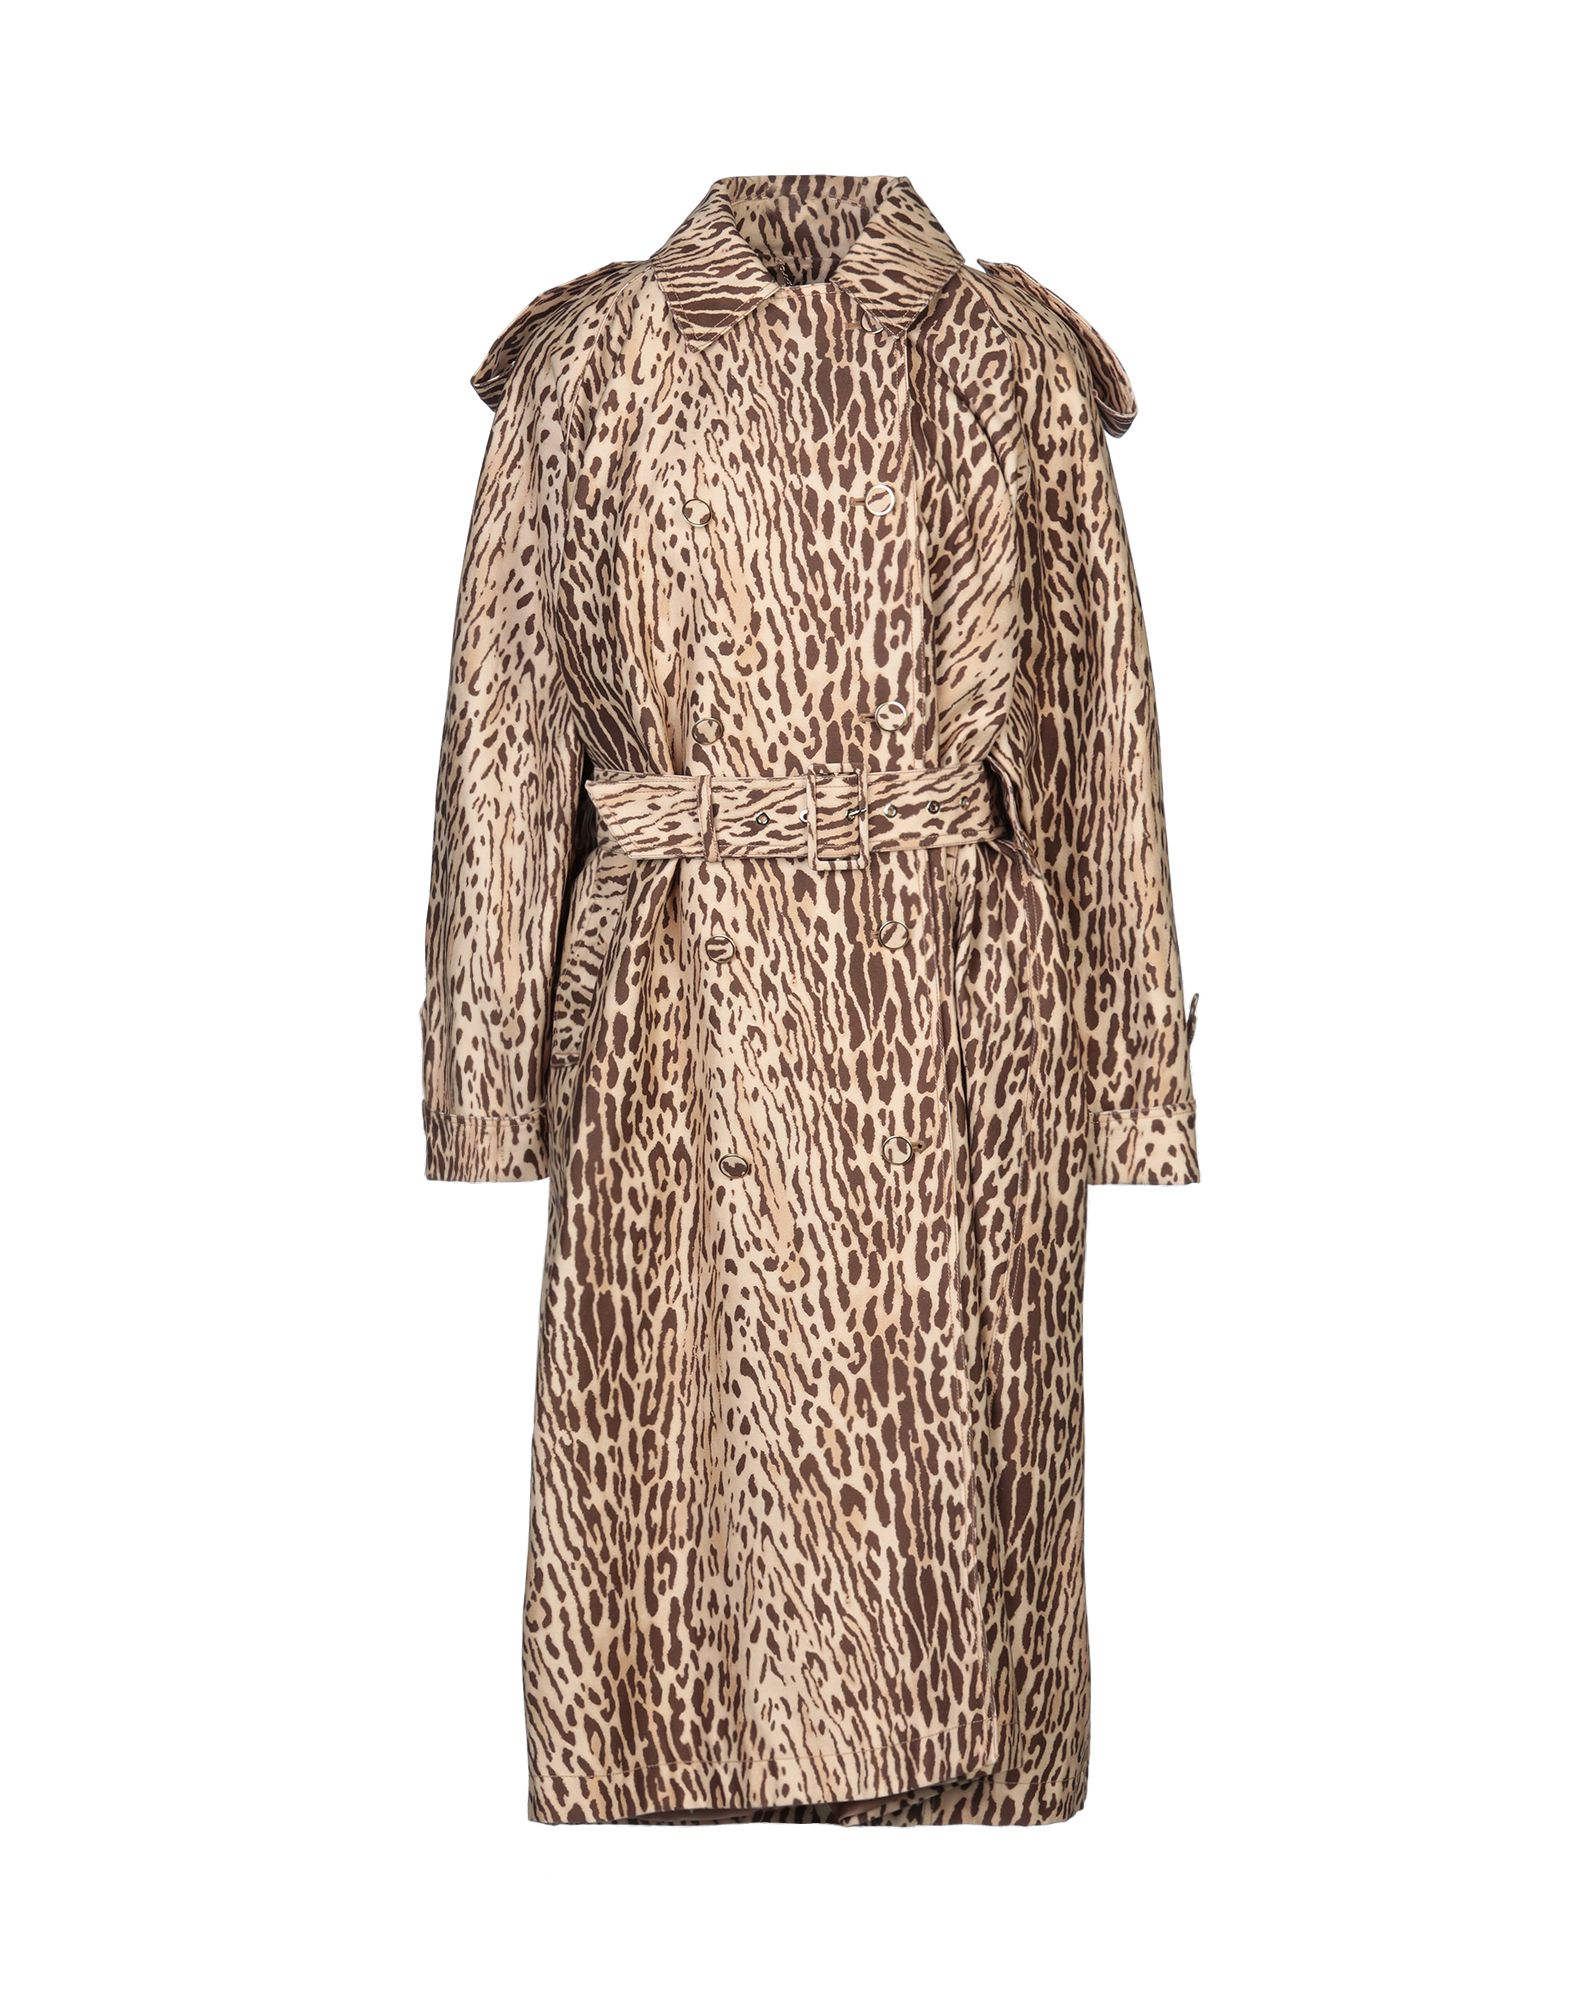 ZIMMERMANN Overcoats. plain weave, belt, leopard-print, double-breasted, button closing, classic neckline, multipockets, long sleeves, rear slit, fully lined. 100% Cotton